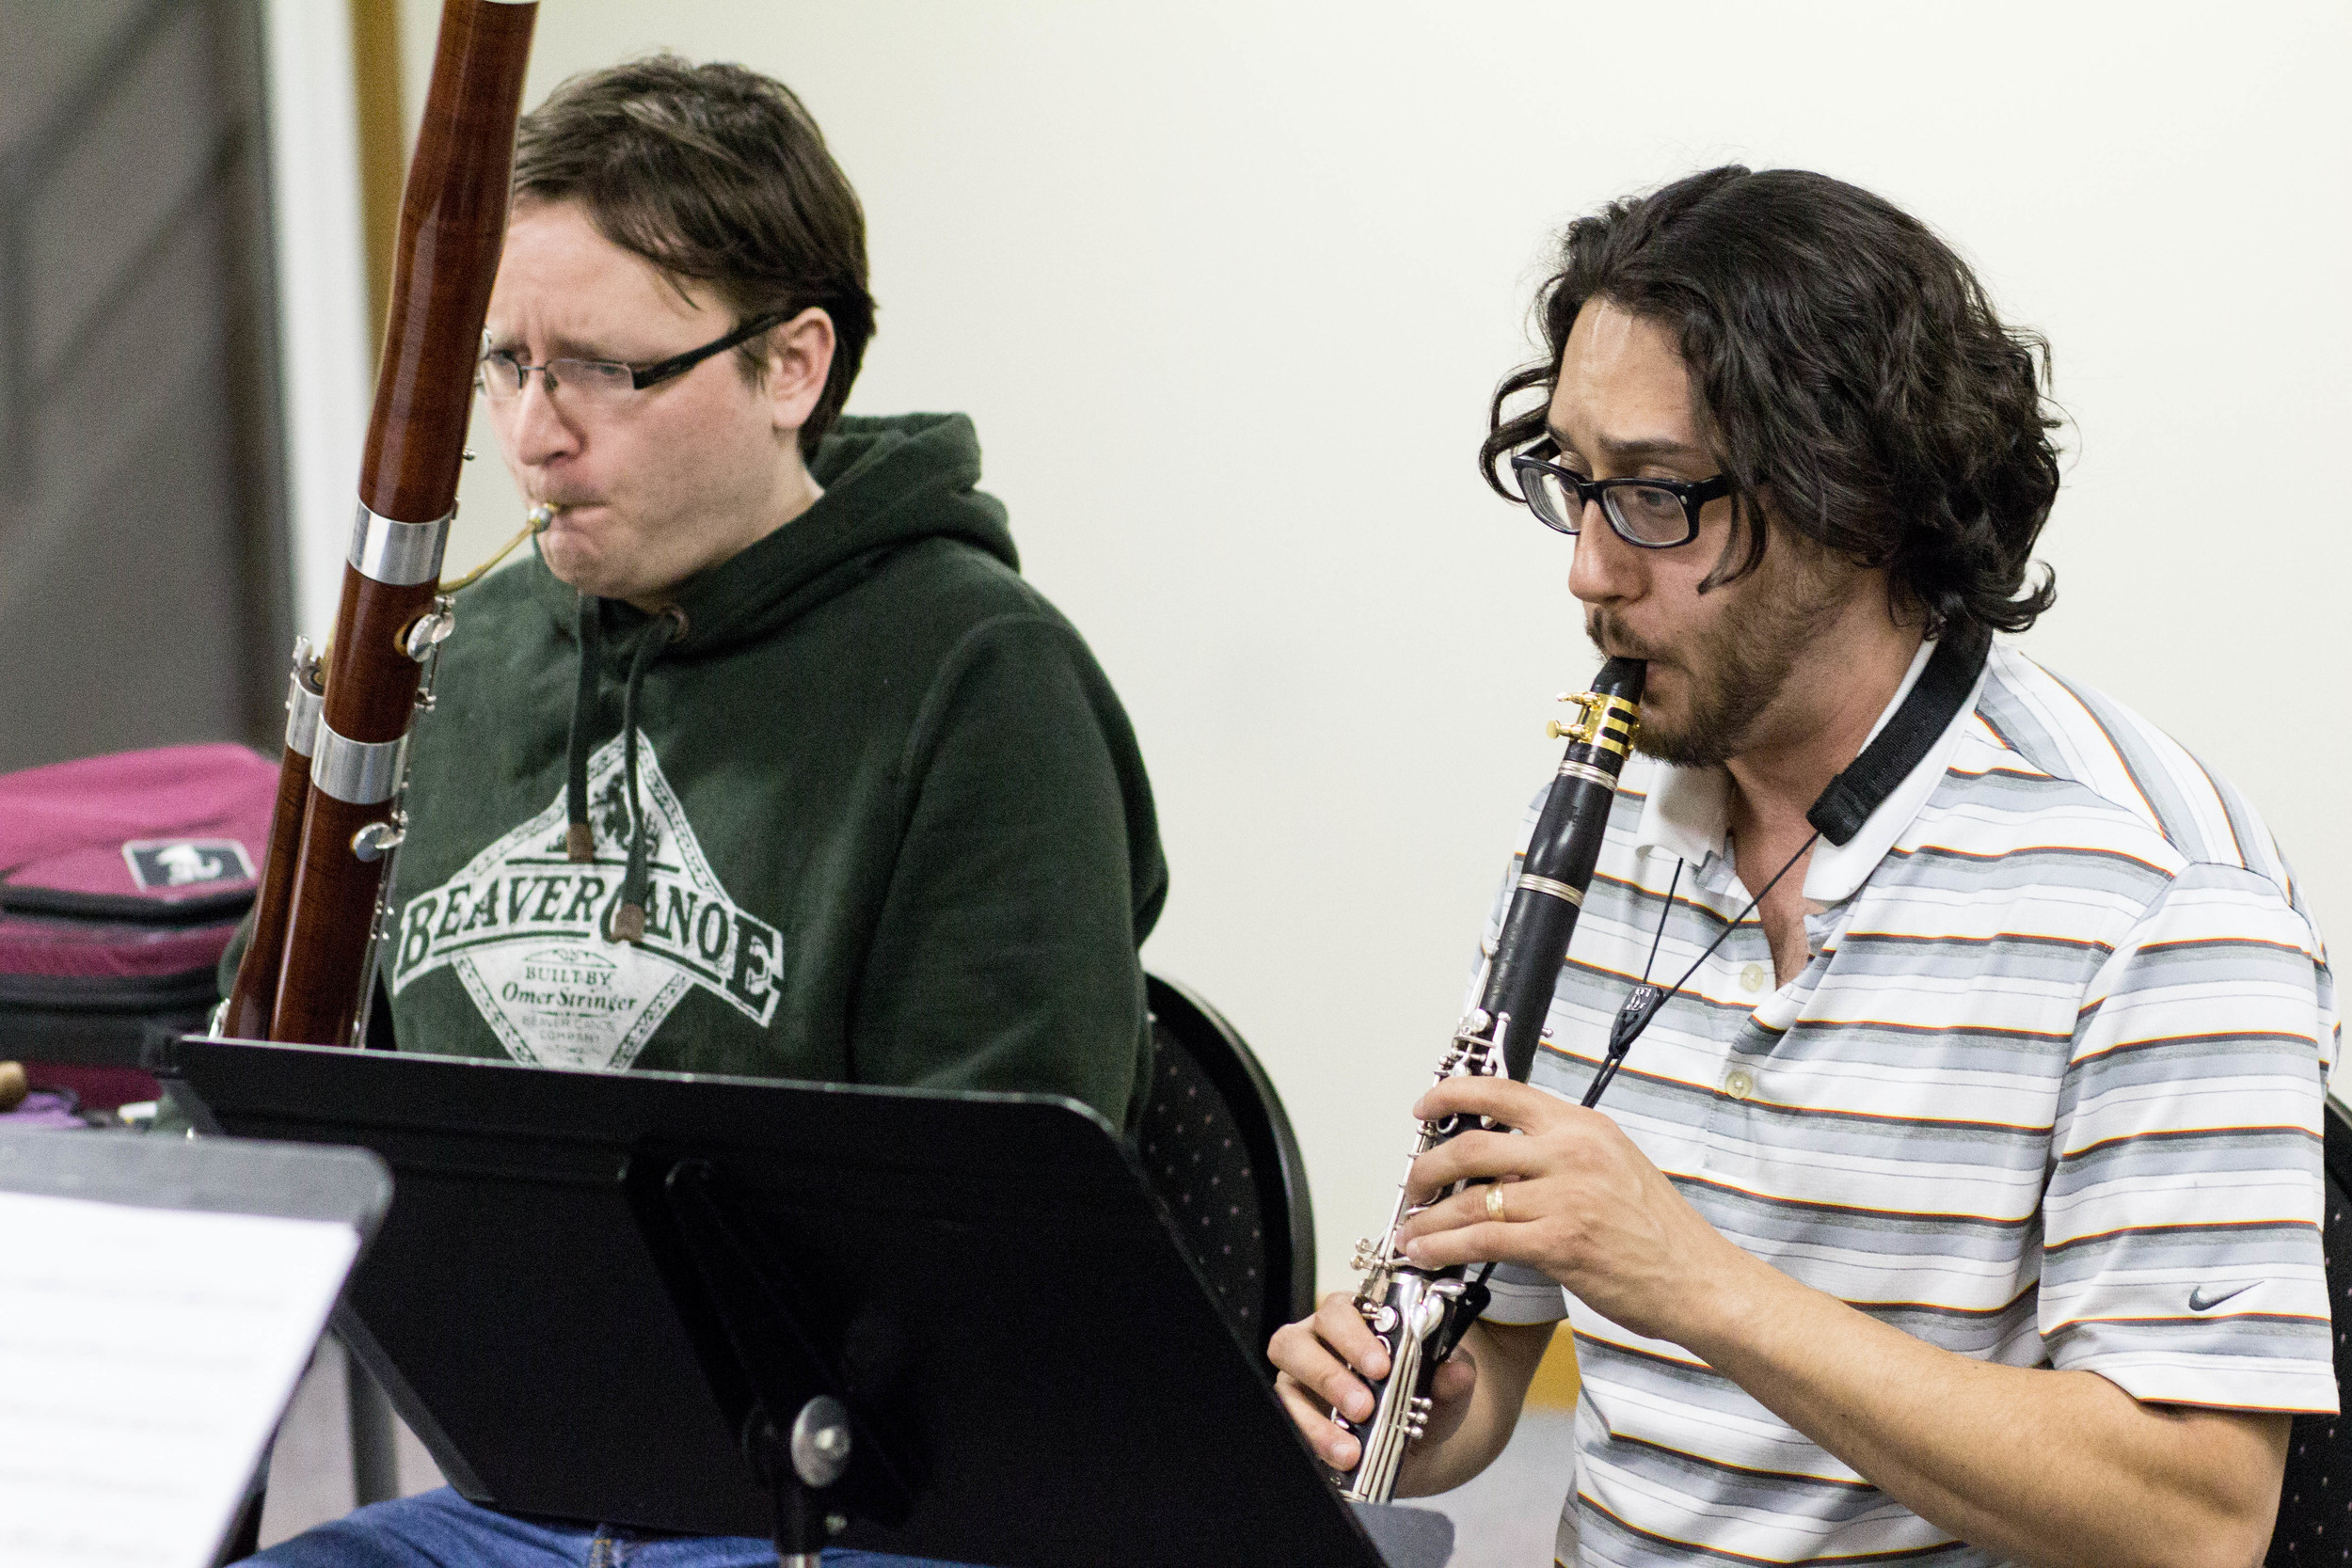 Copy of Anthony Thompson (clarinet) and Mike Macaulay (bassoon)